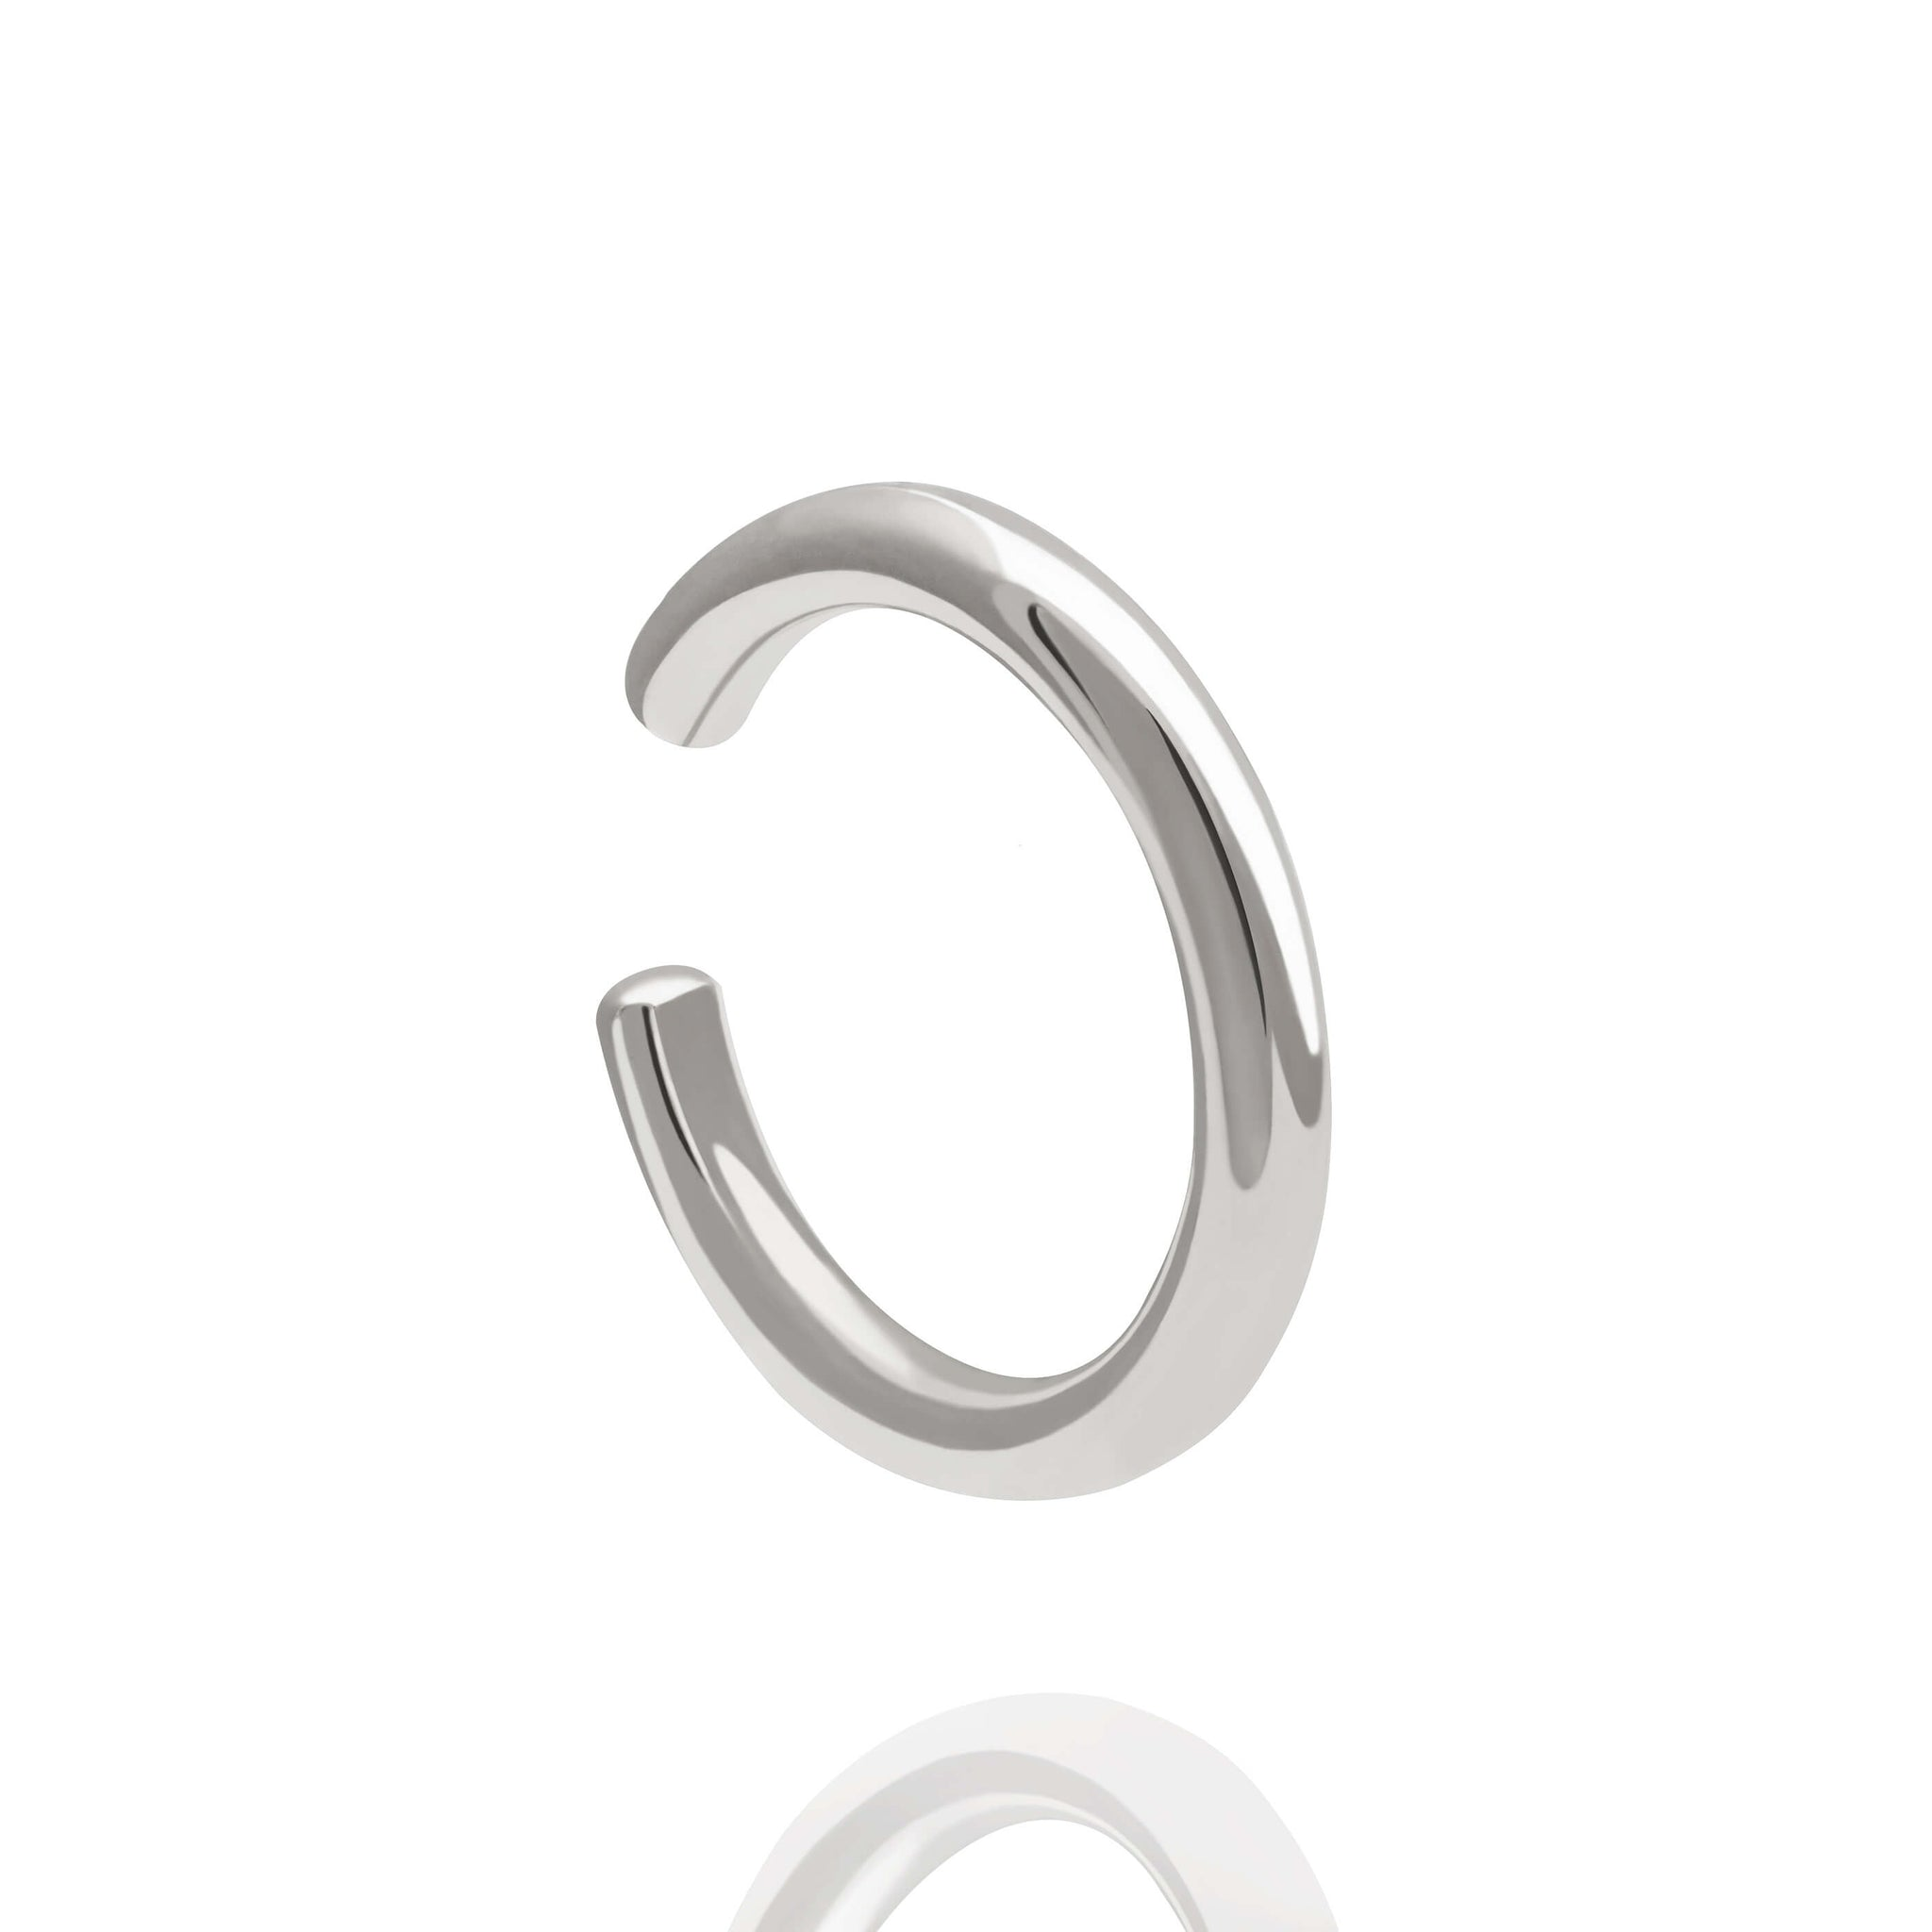 Sterling silver, rhodium plated basic or plain ear cuff  Edit alt text